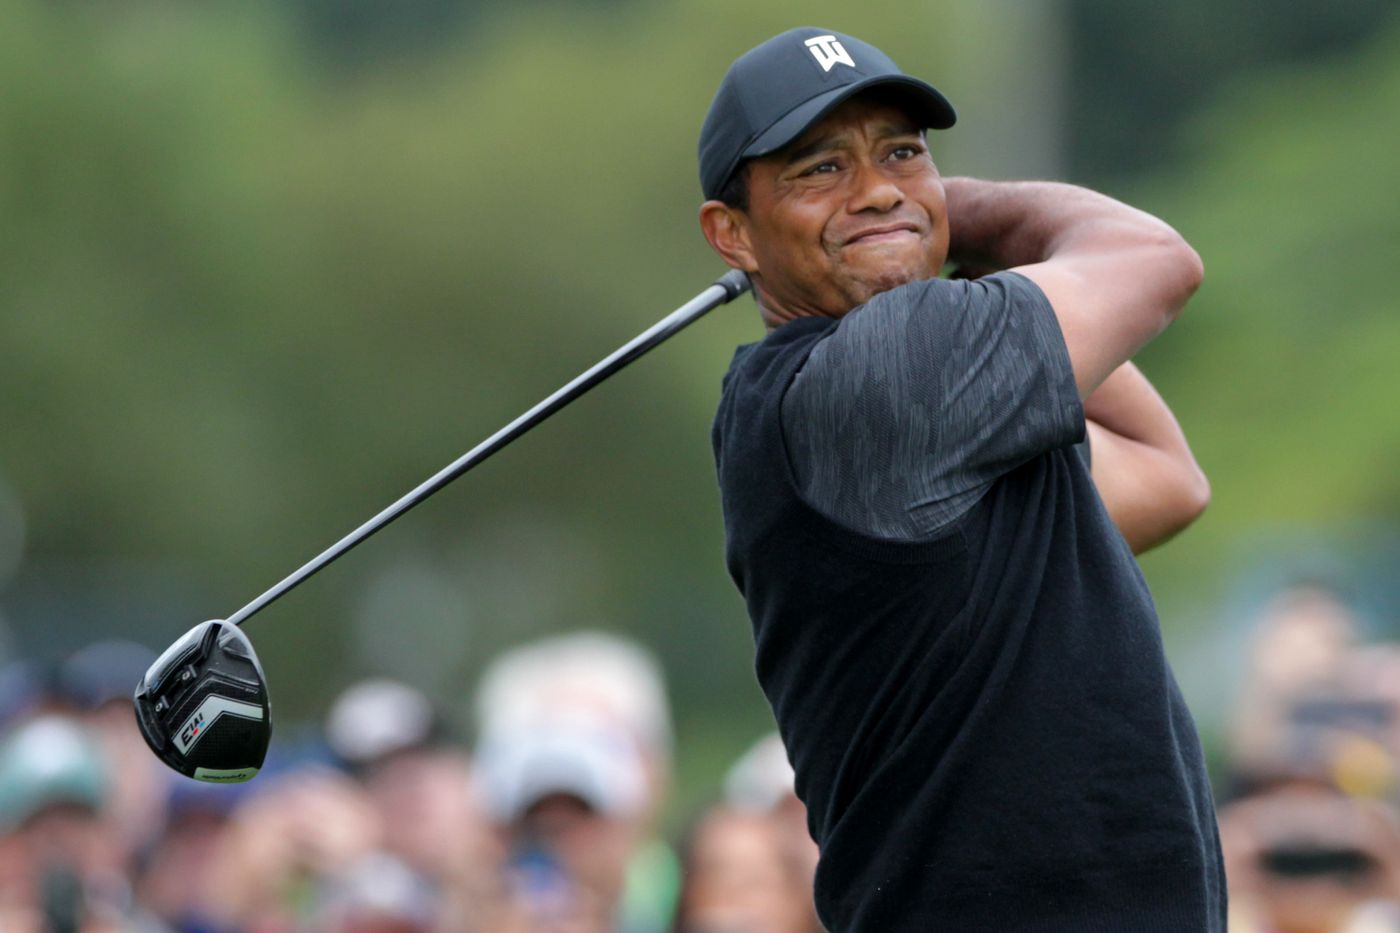 Tiger Woods can't keep up early success, fades in third round of BMW Championship